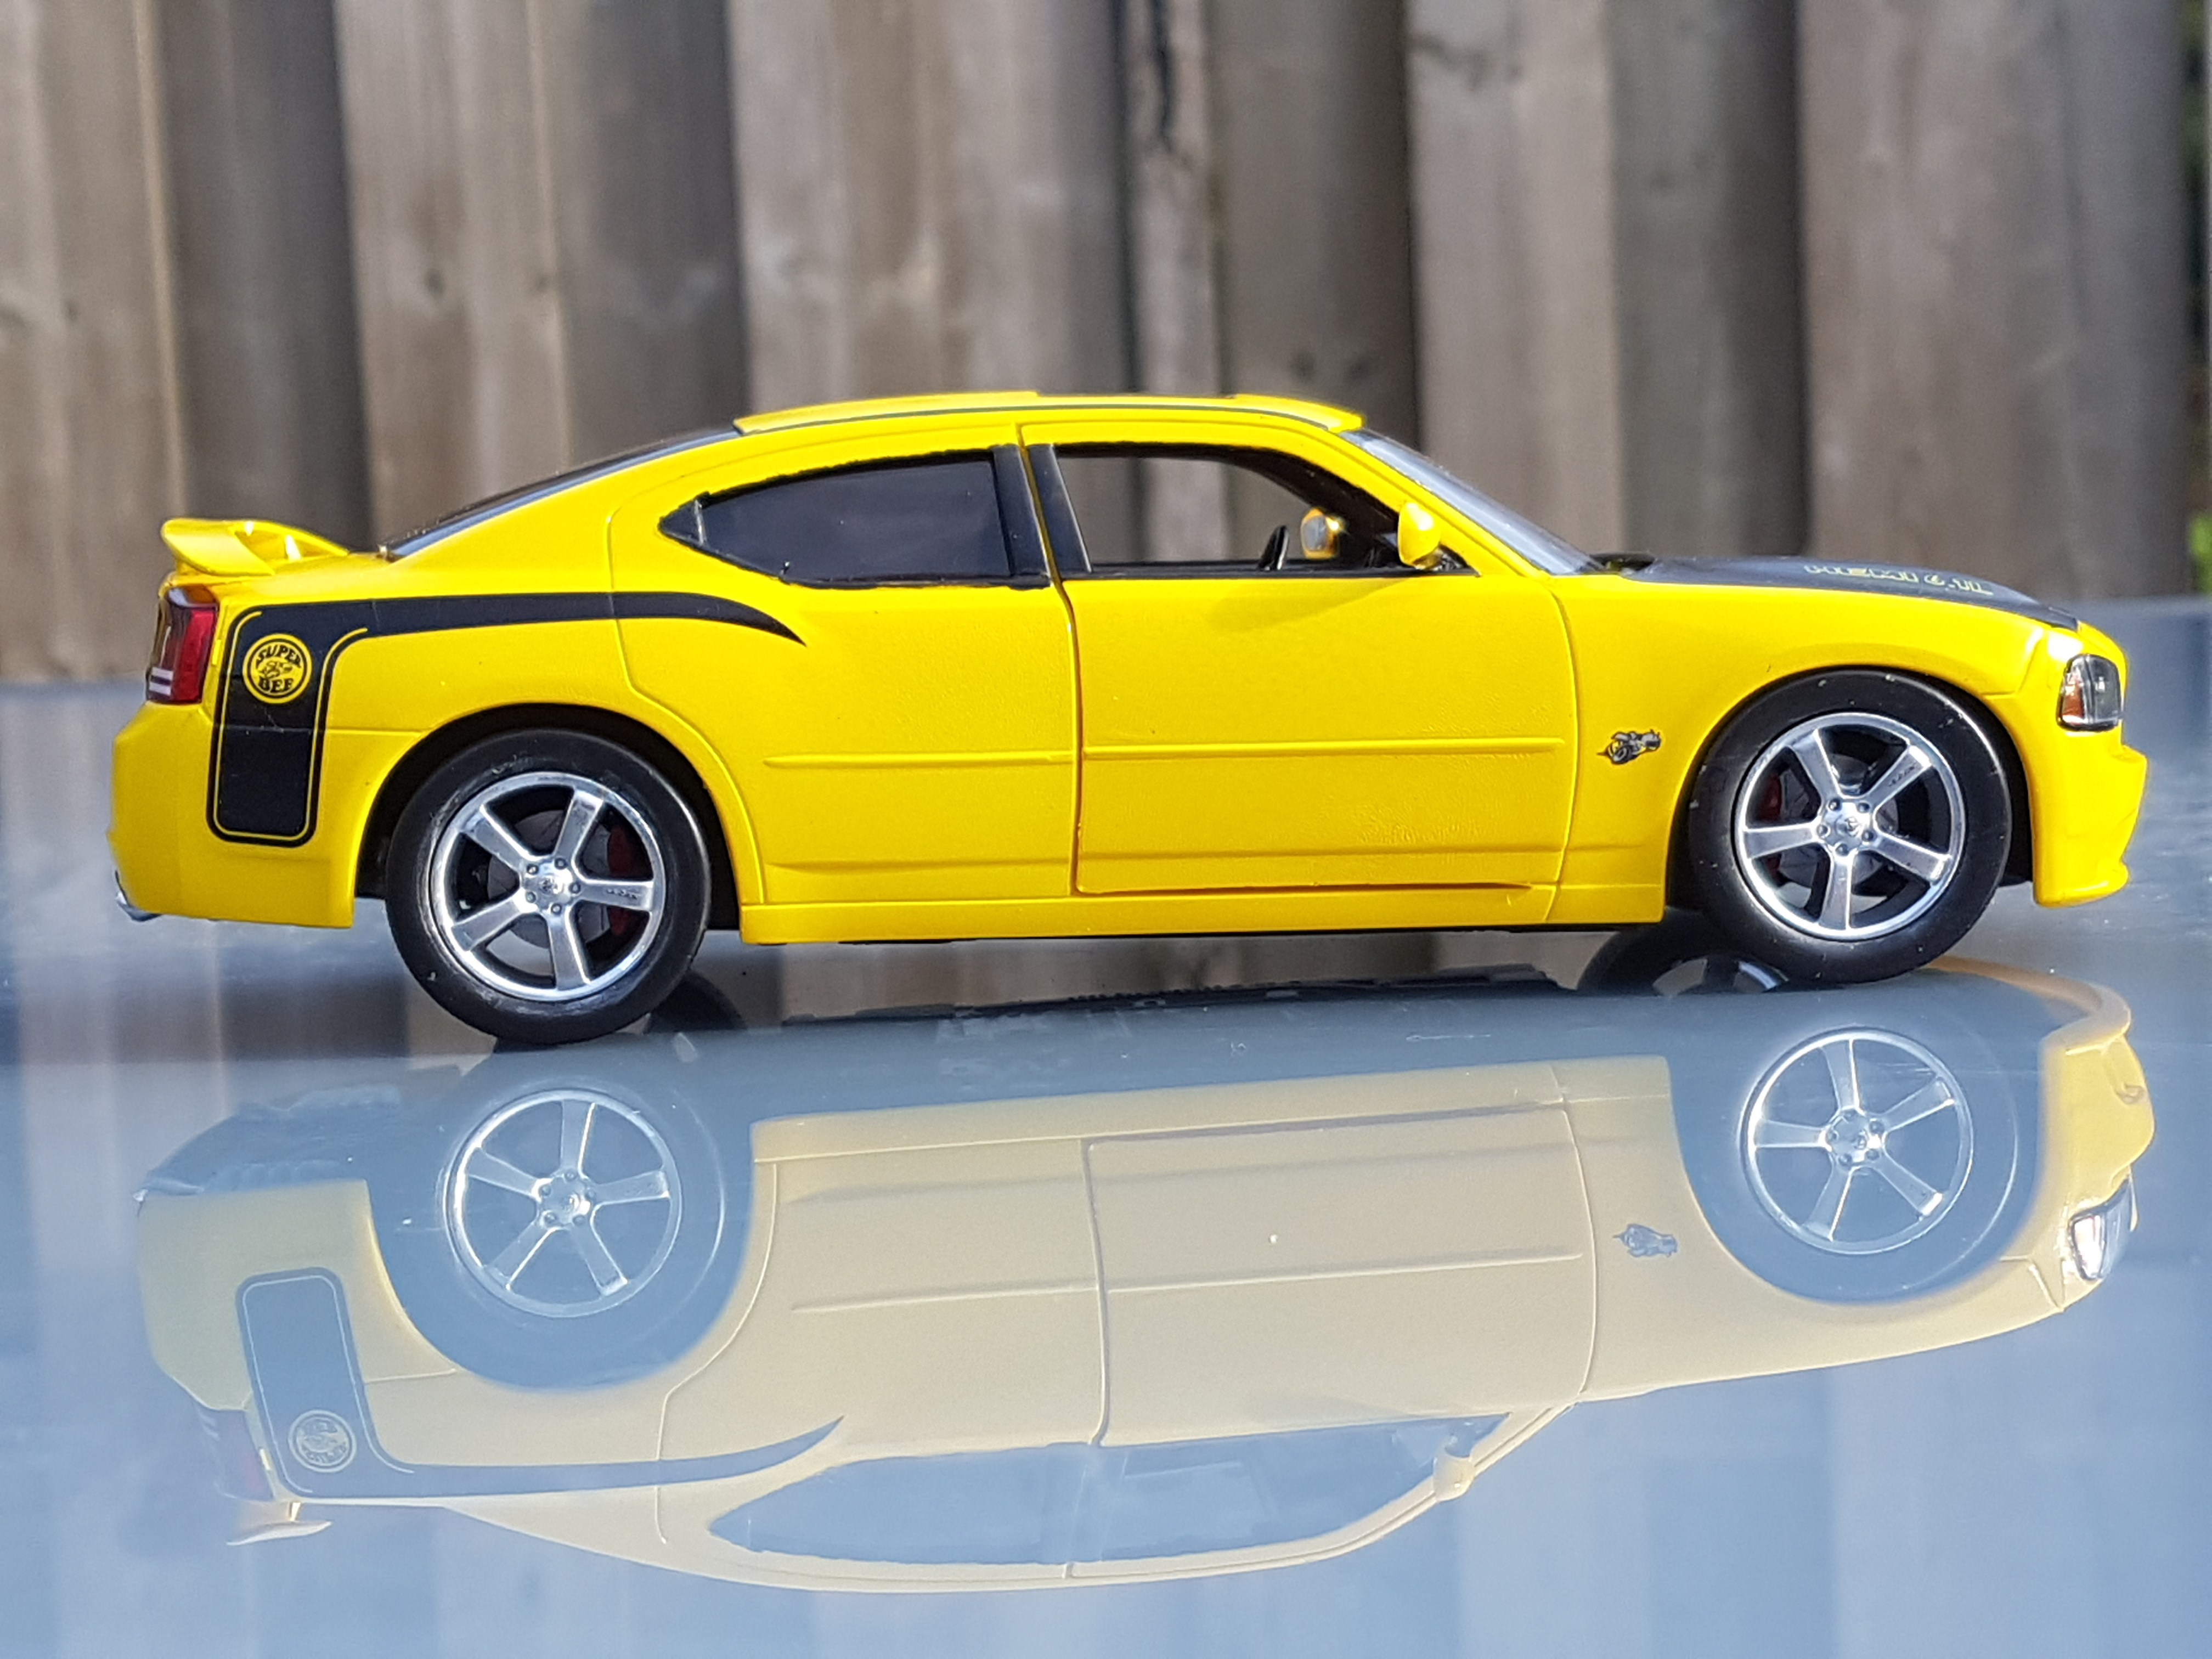 2007 Dodge Charger Srt8 Super Bee Revell Rays Kits